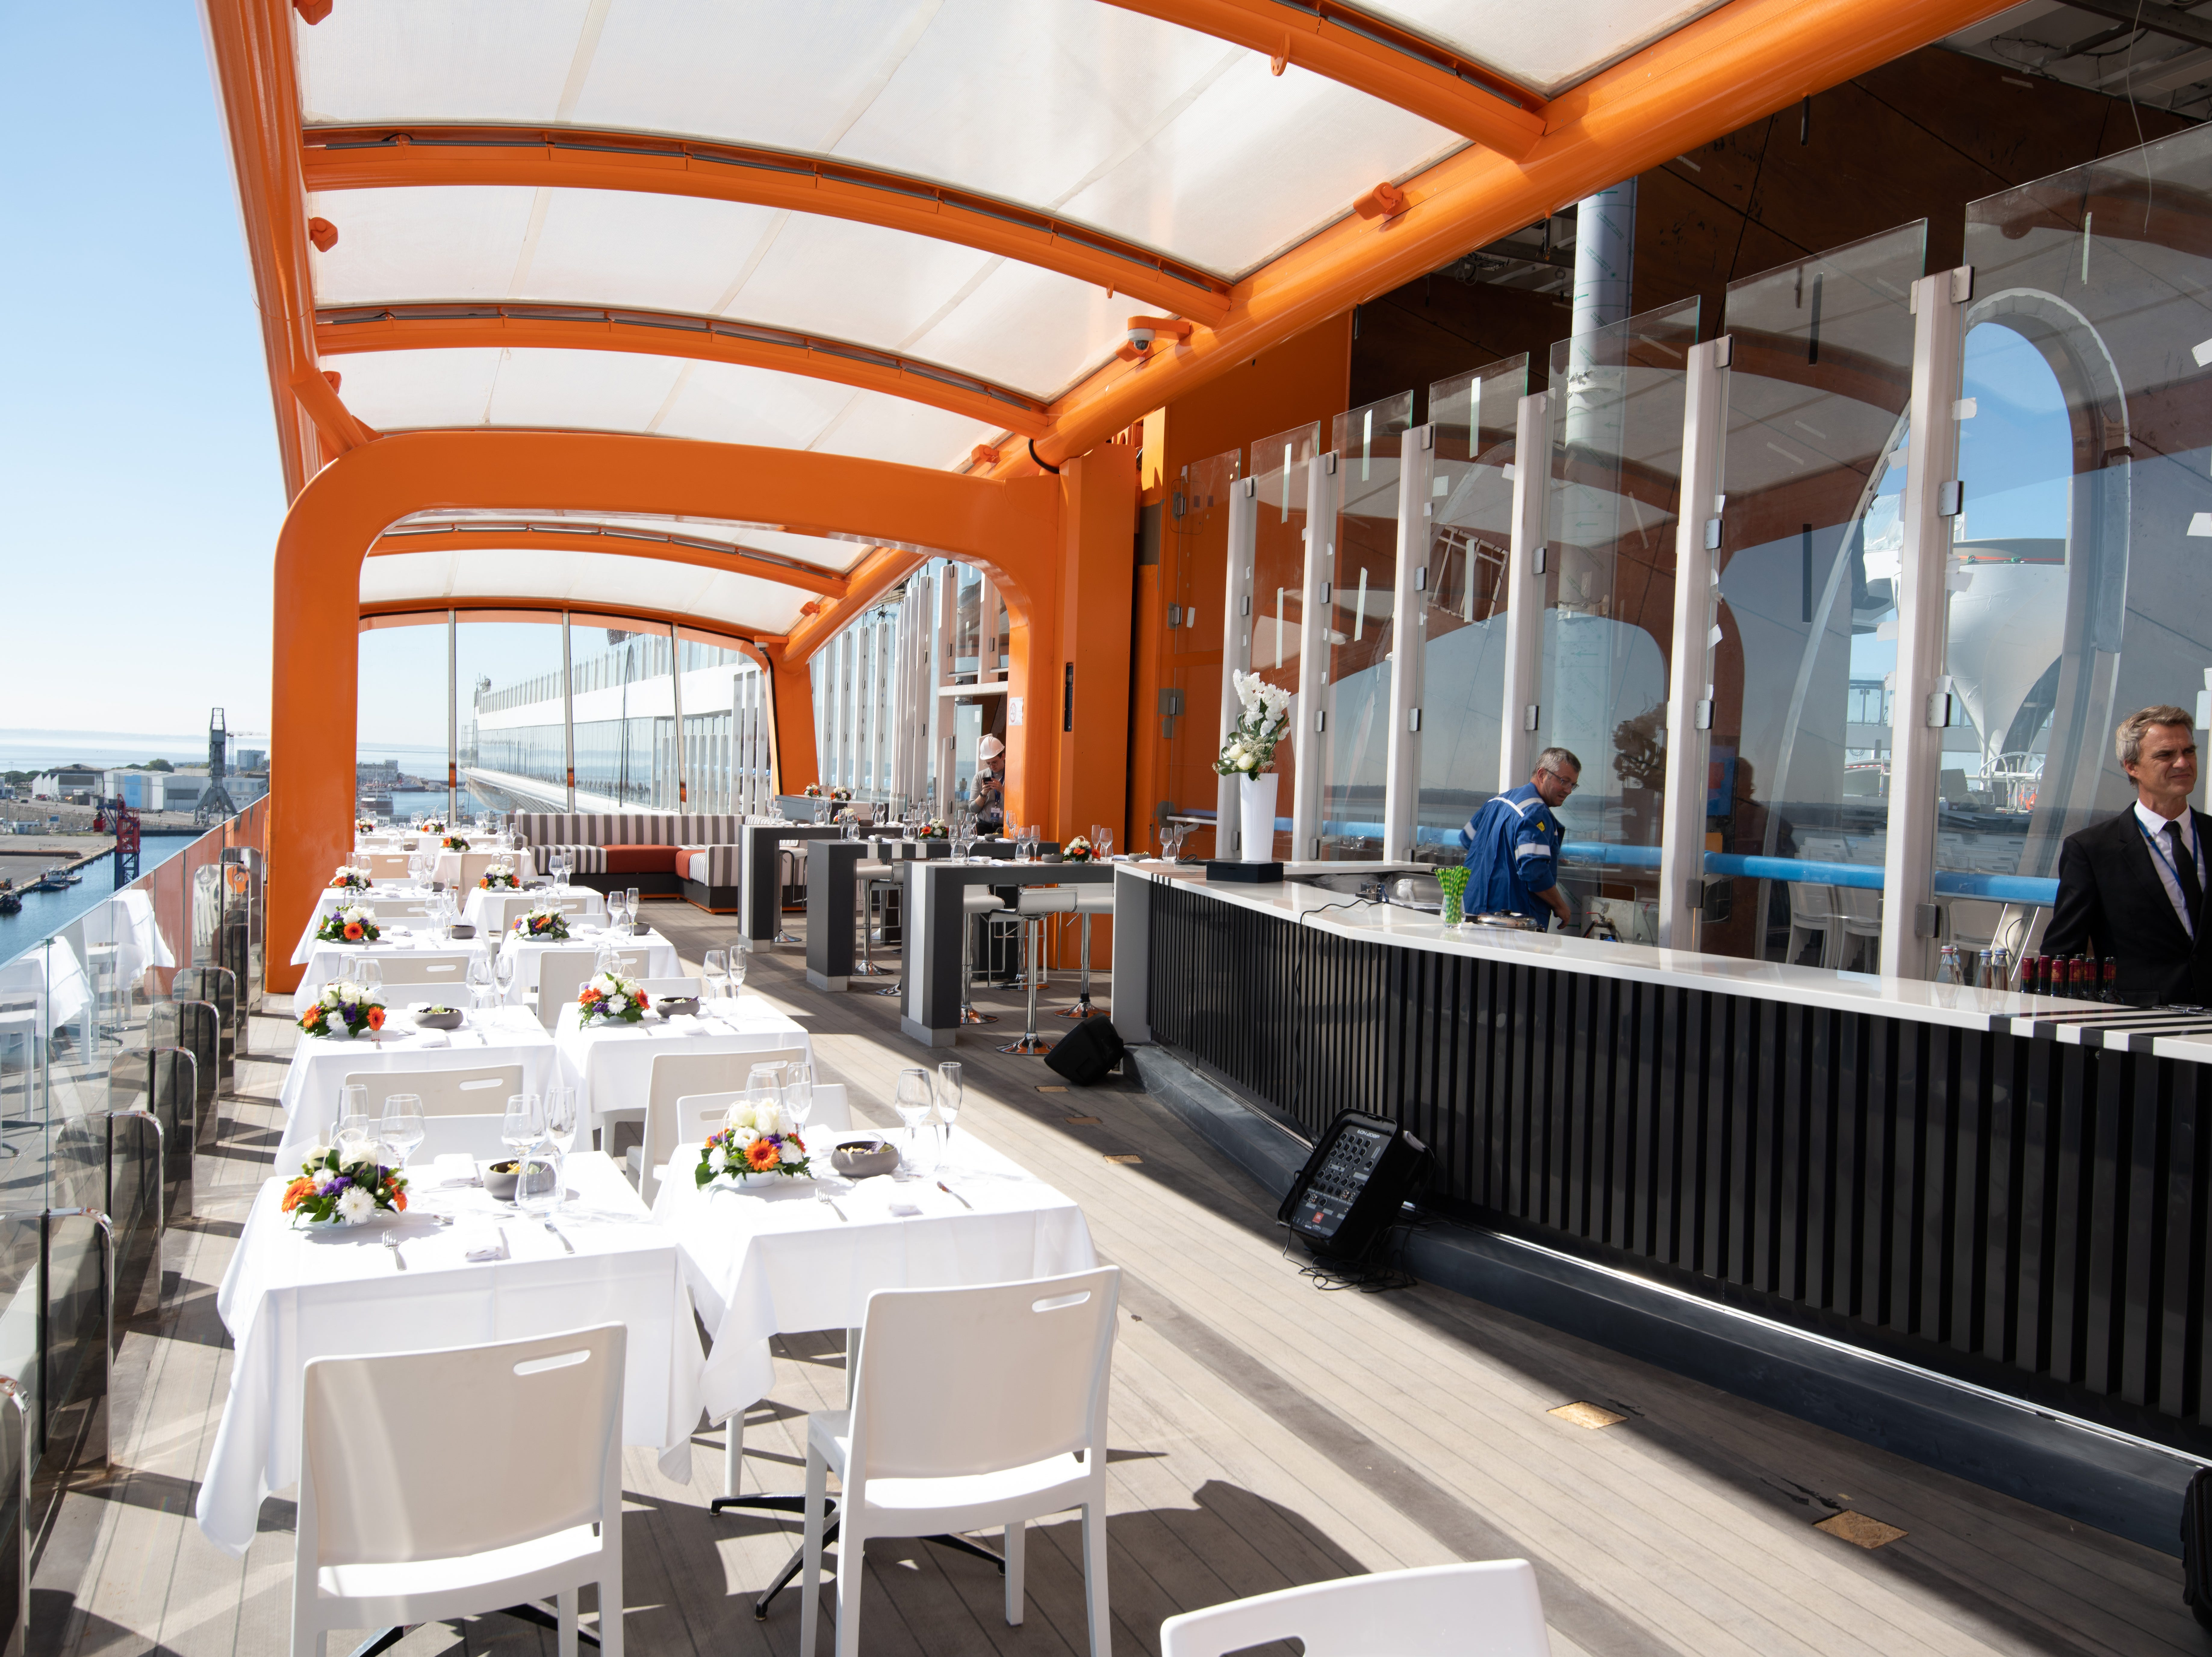 Magic Carpet will move up and down the side of Celebrity Edge to serve a range of functions. It can be placed alongside Deck 2 of the ship to operate as a boarding platform for tenders to shore. Placed adjacent to Deck 16, it can be transformed into an outdoor dining venue.